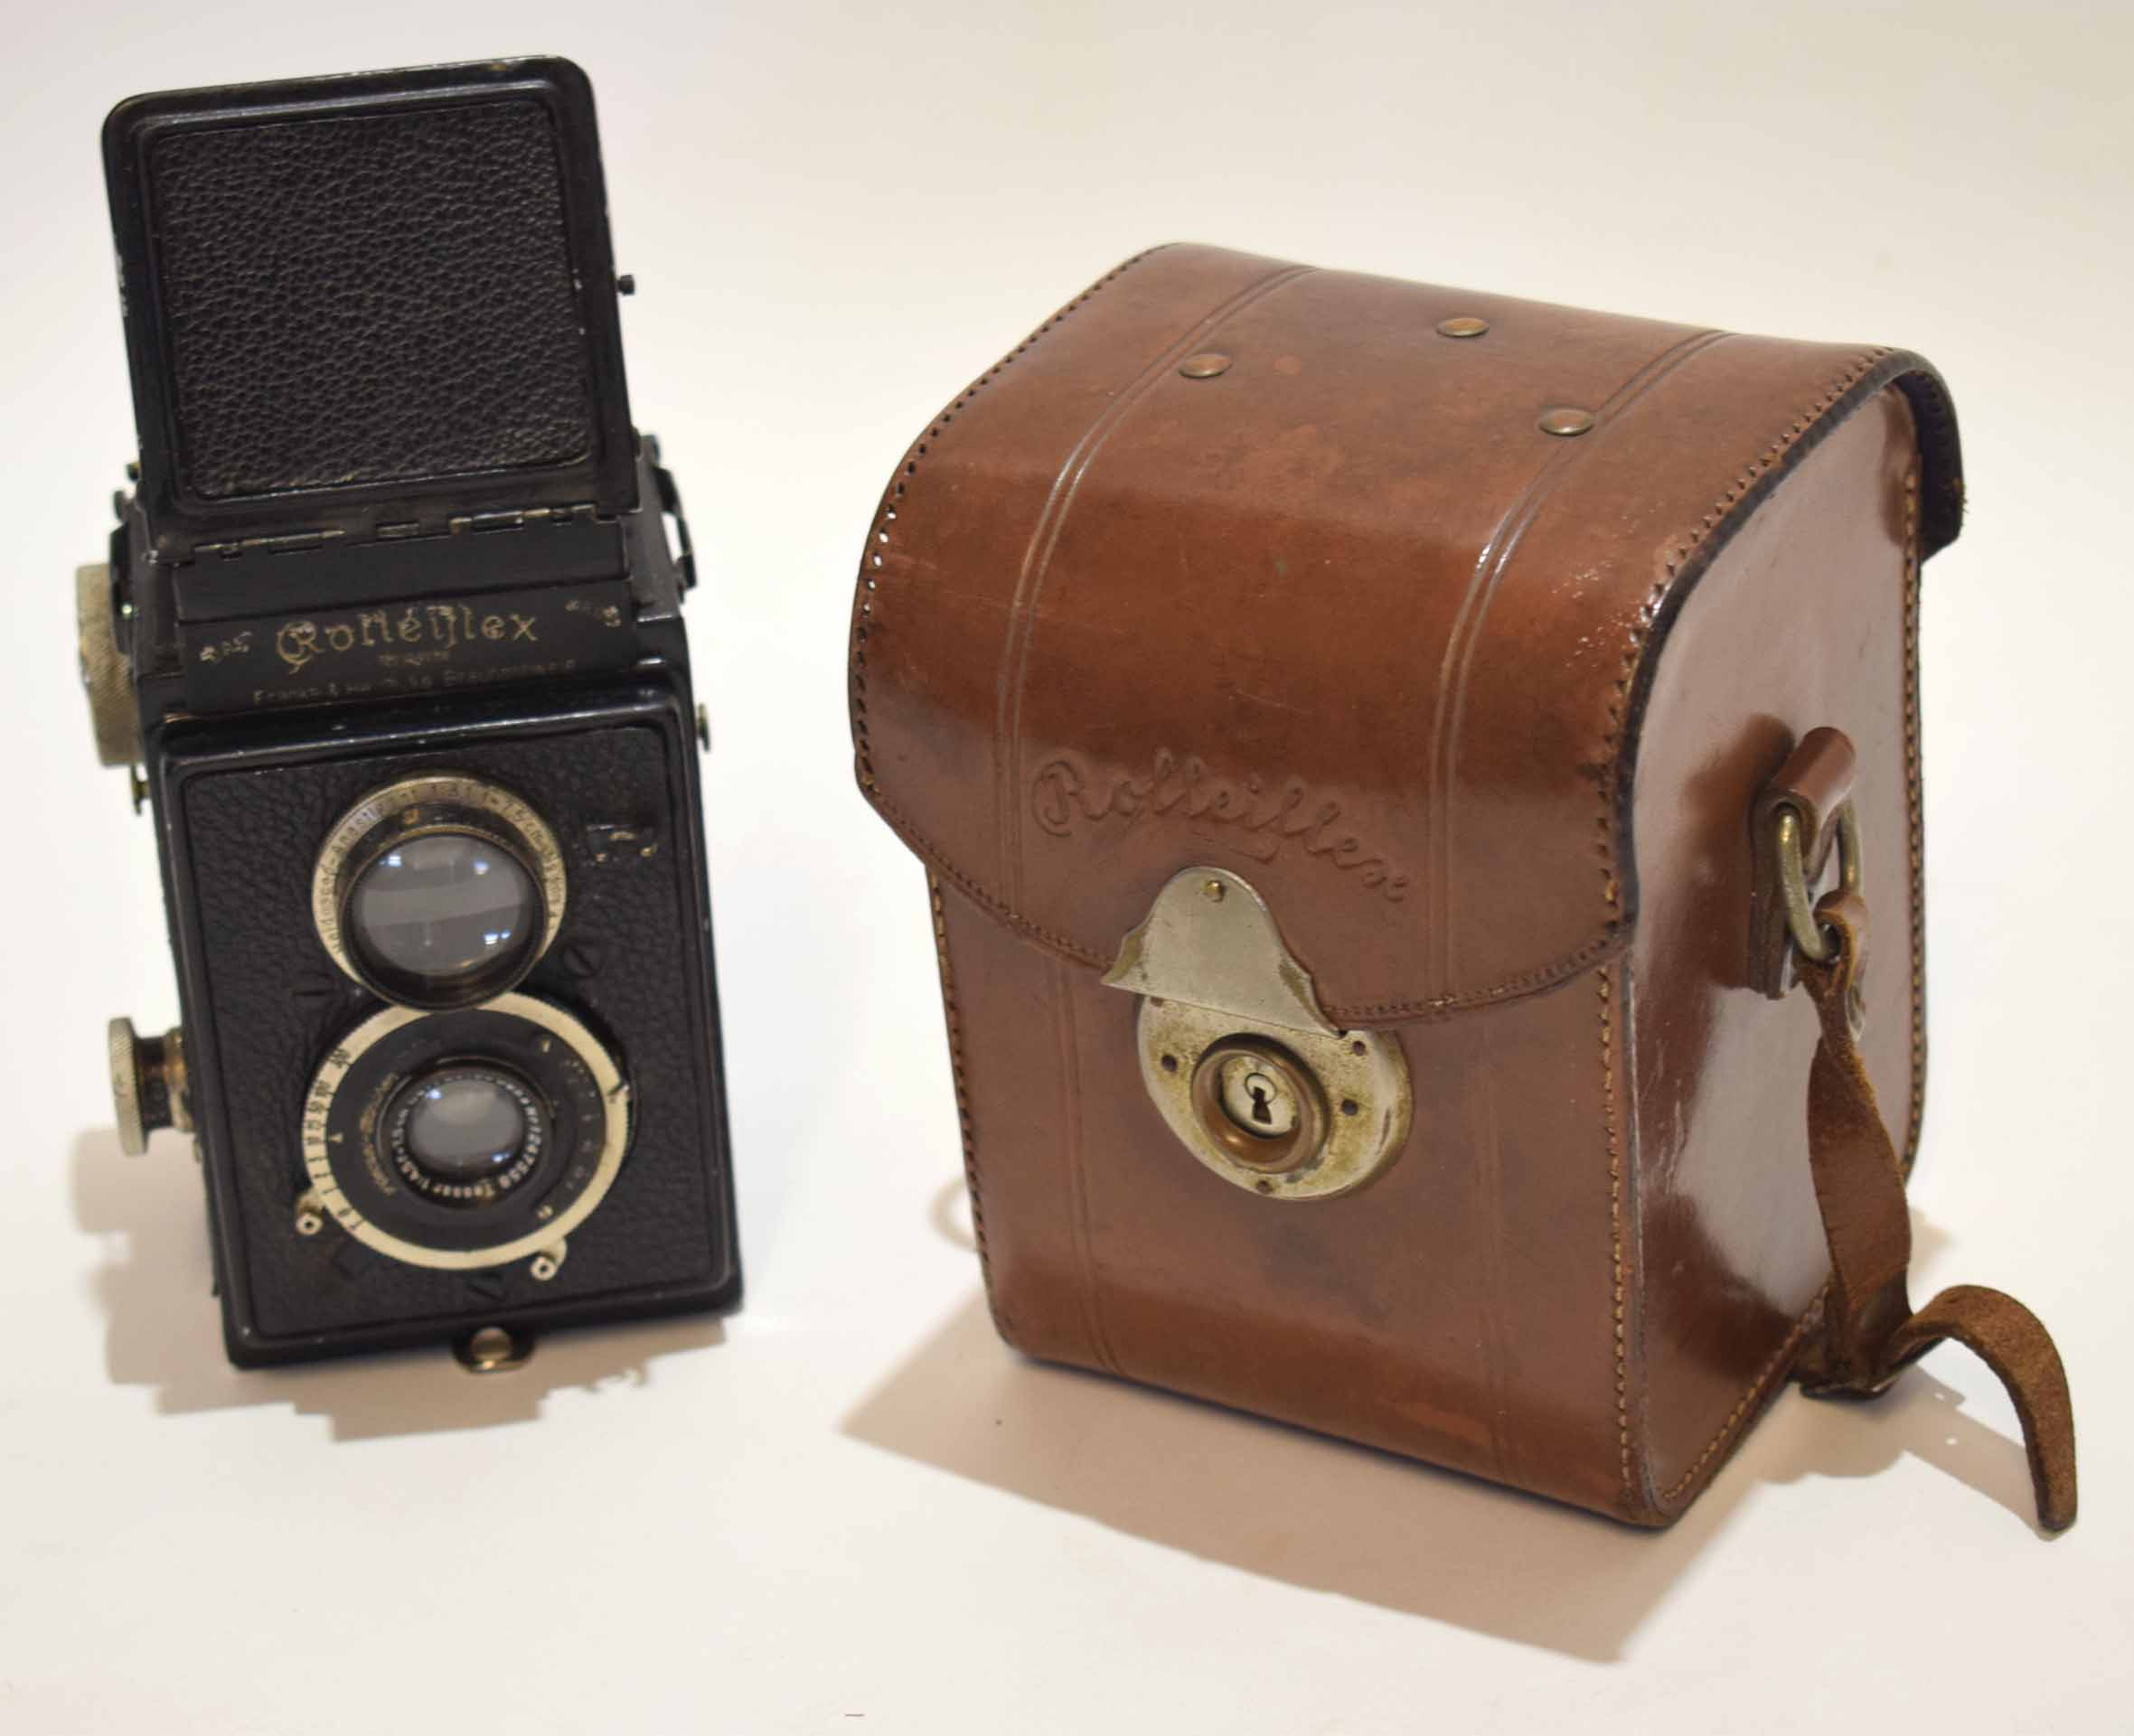 Lot 340 - Mid-20th century Rolleiflex camera, No 104178, Franke & Heidecke, Braunschweig, height 13cm in its